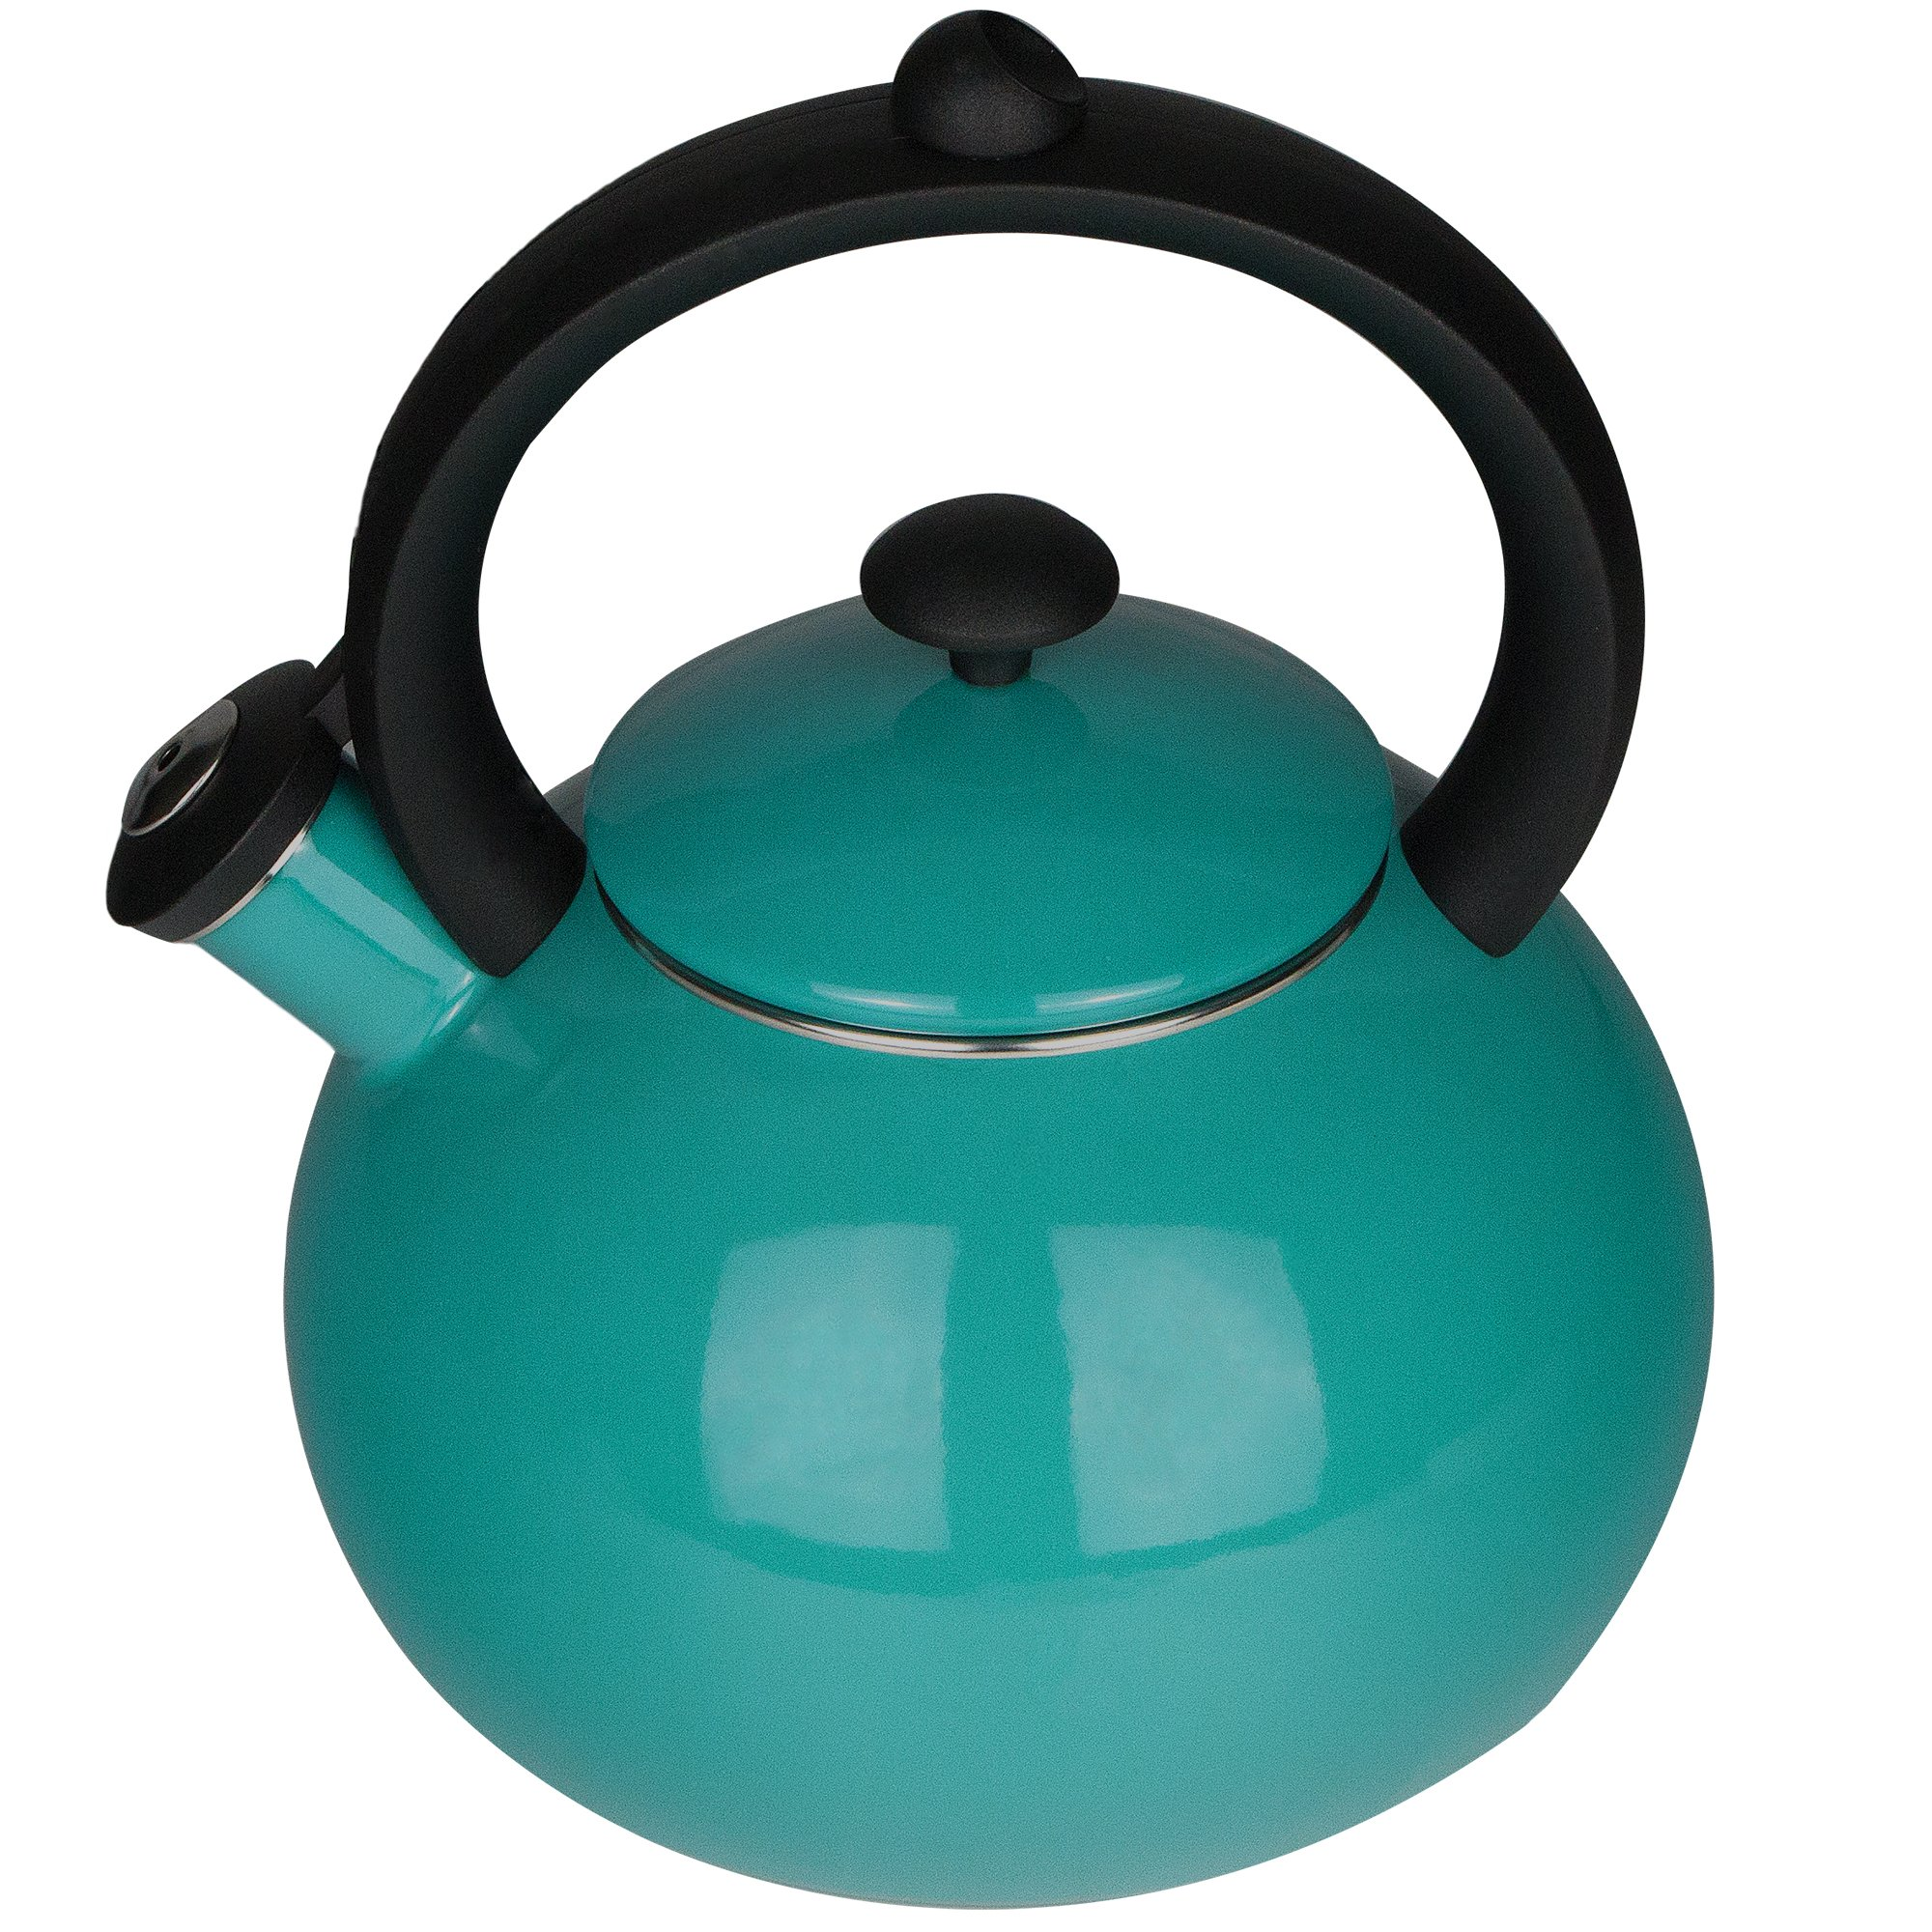 Enamel-on-Steel Tea Kettle for Stovetop - Whistling Teakettle 2-Quart Turquoise Blue Tea Pots Costa by AIDEA